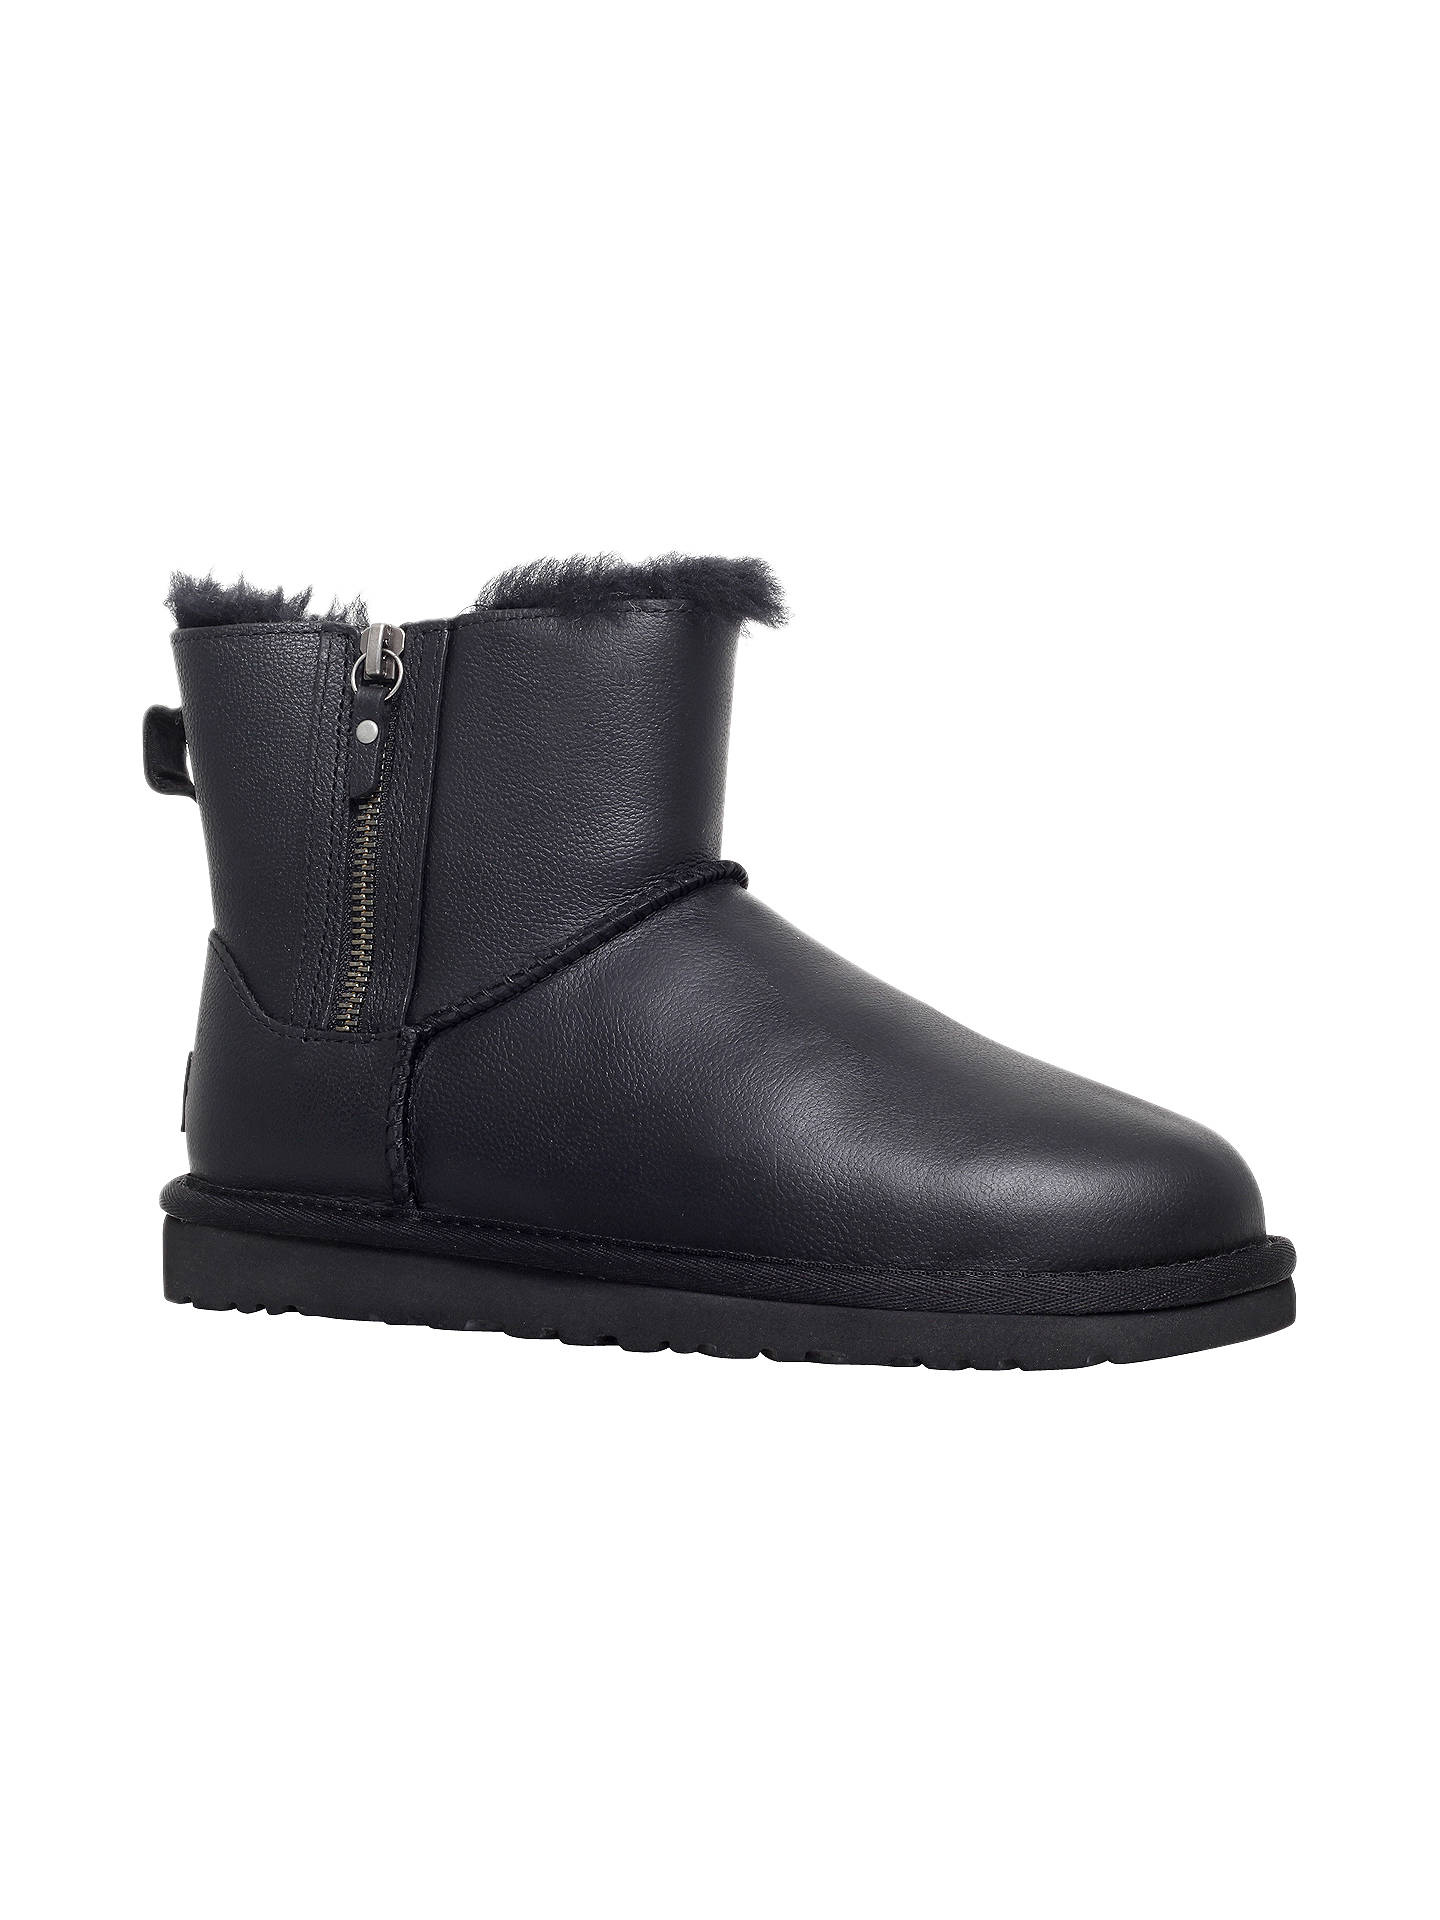 2b6c1601c78 UGG Classic Leather Mini Double Zip Ankle Boots, Black at John Lewis ...